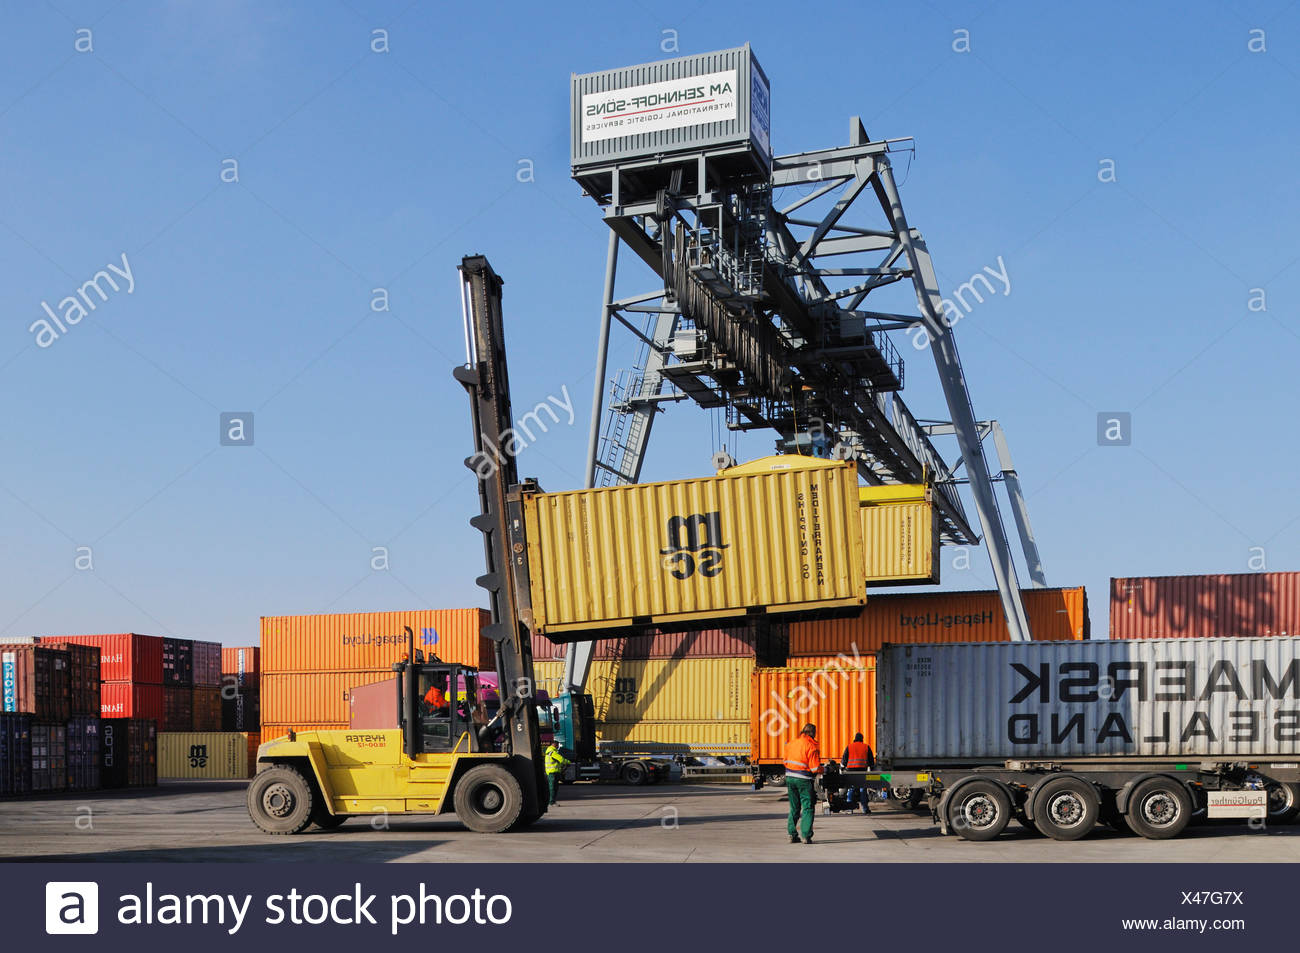 Bonn container terminal, container handling, reach stacker drives a container to a truck, container bridge repositioning a cont - Stock Image